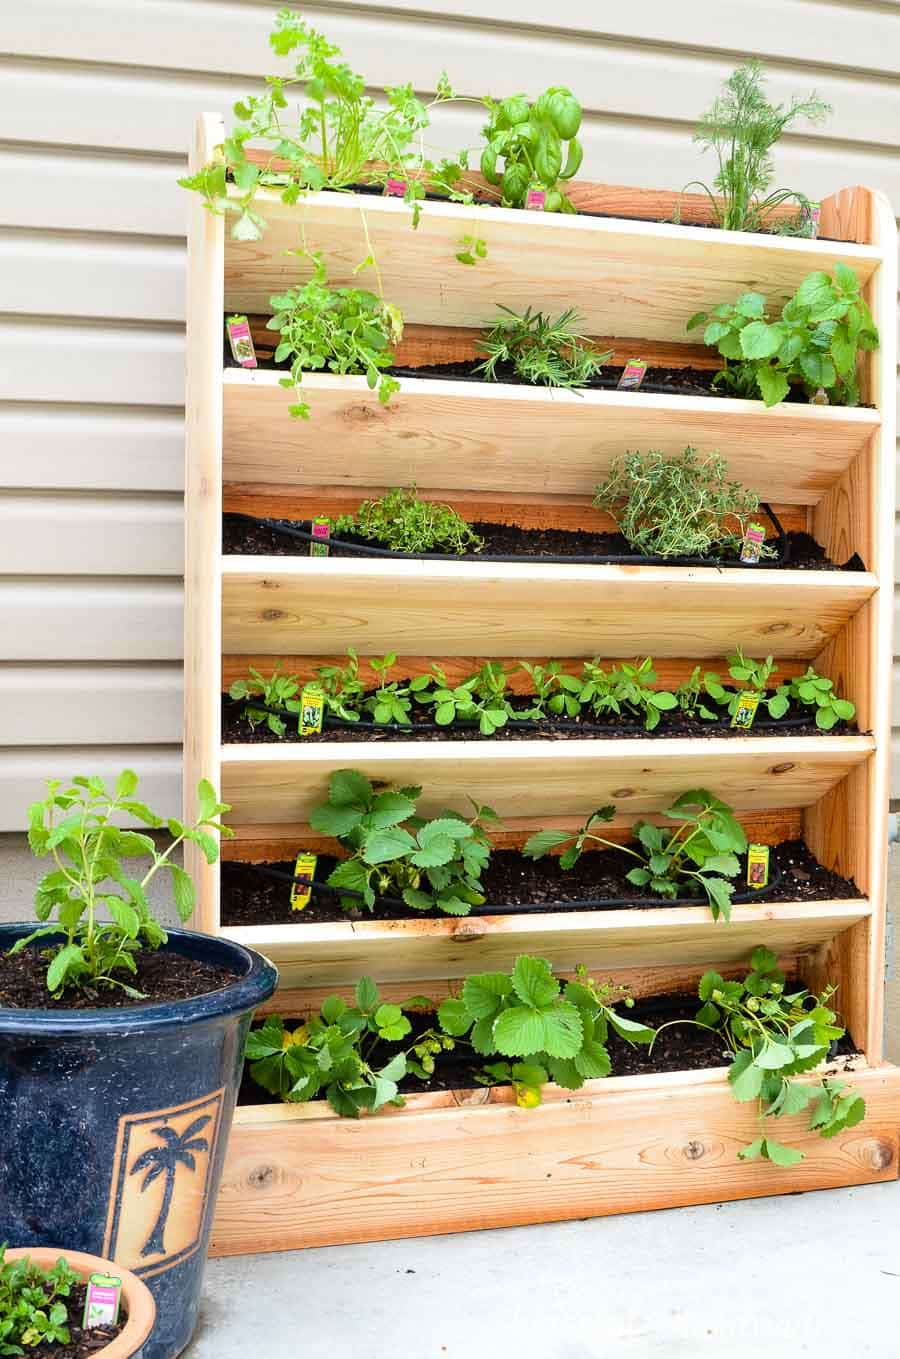 Create a DIY vertical garden for the perfect small space garden solution. This cedar vertical garden has a lot of space to grow your favorite herbs and plants. And the built in drip watering system will help make watering your vertical garden even easier. Housefulofhandmade.com